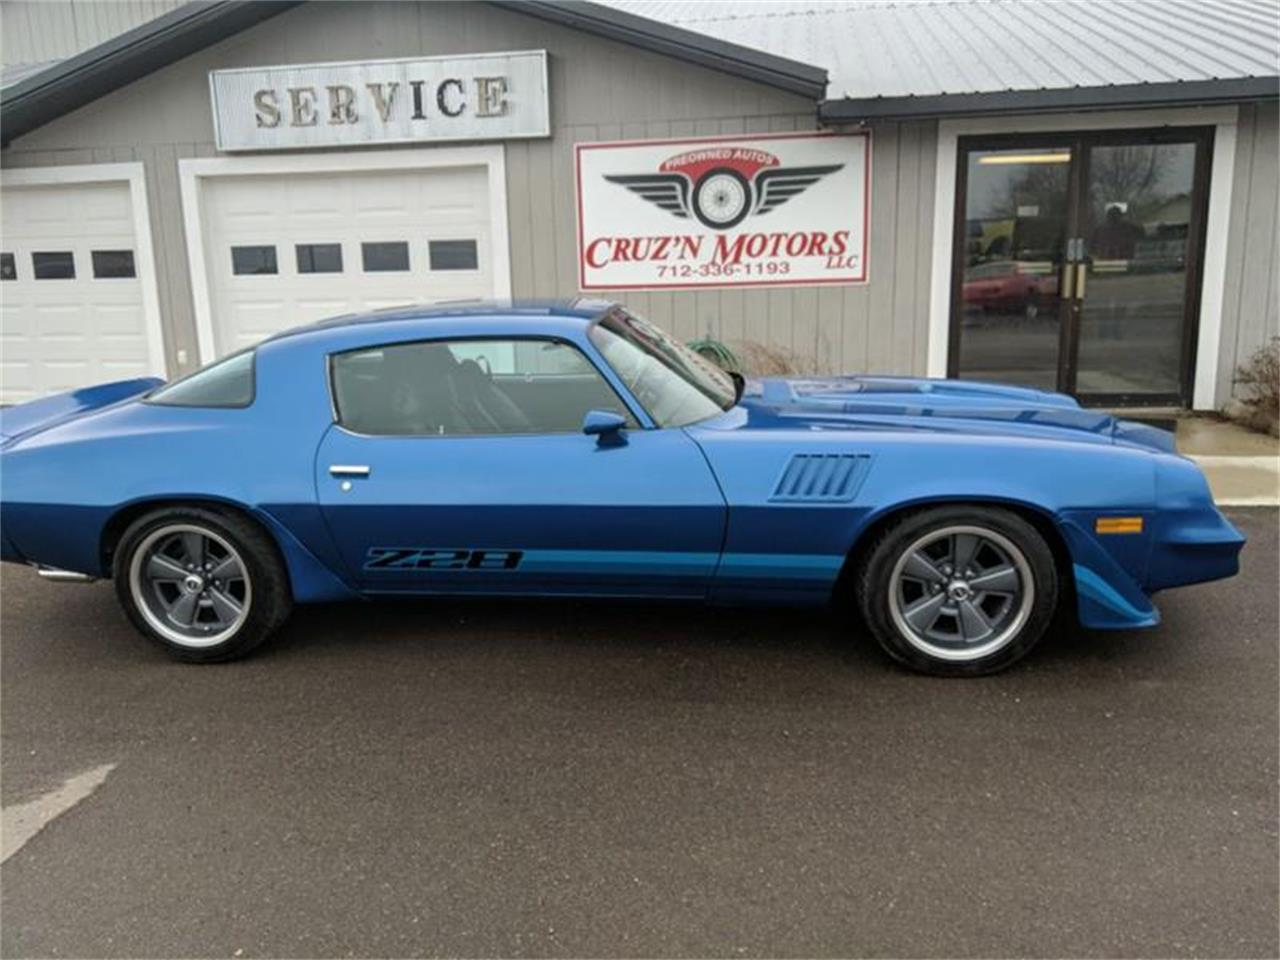 Large Picture of 1978 Chevrolet Camaro located in Spirit Lake Iowa - $20,995.00 Offered by Cruz'n Motors - PX97